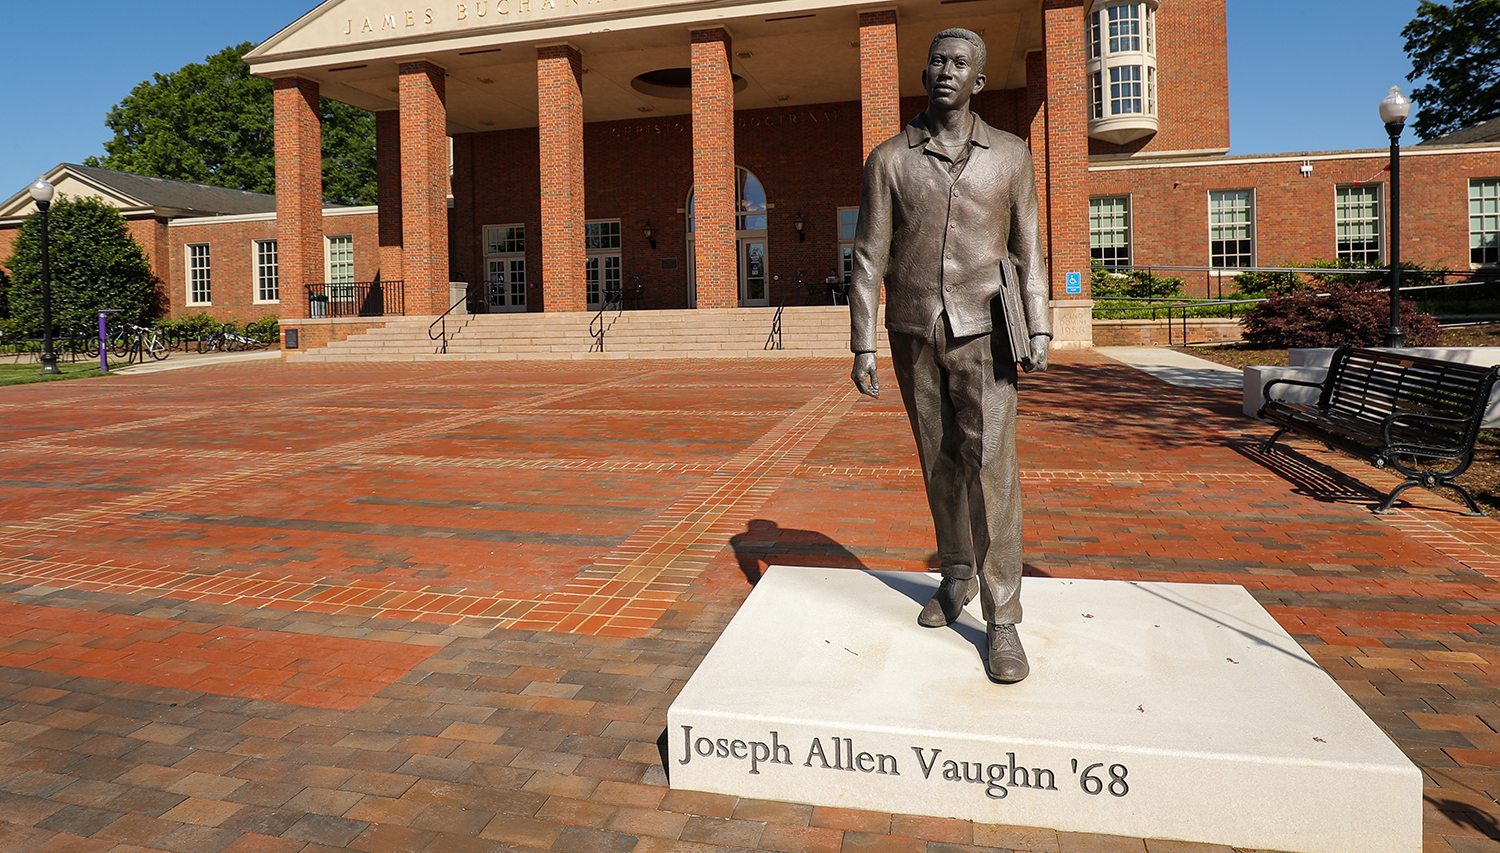 The Joseph Vaughn statue in front of the Duke Library